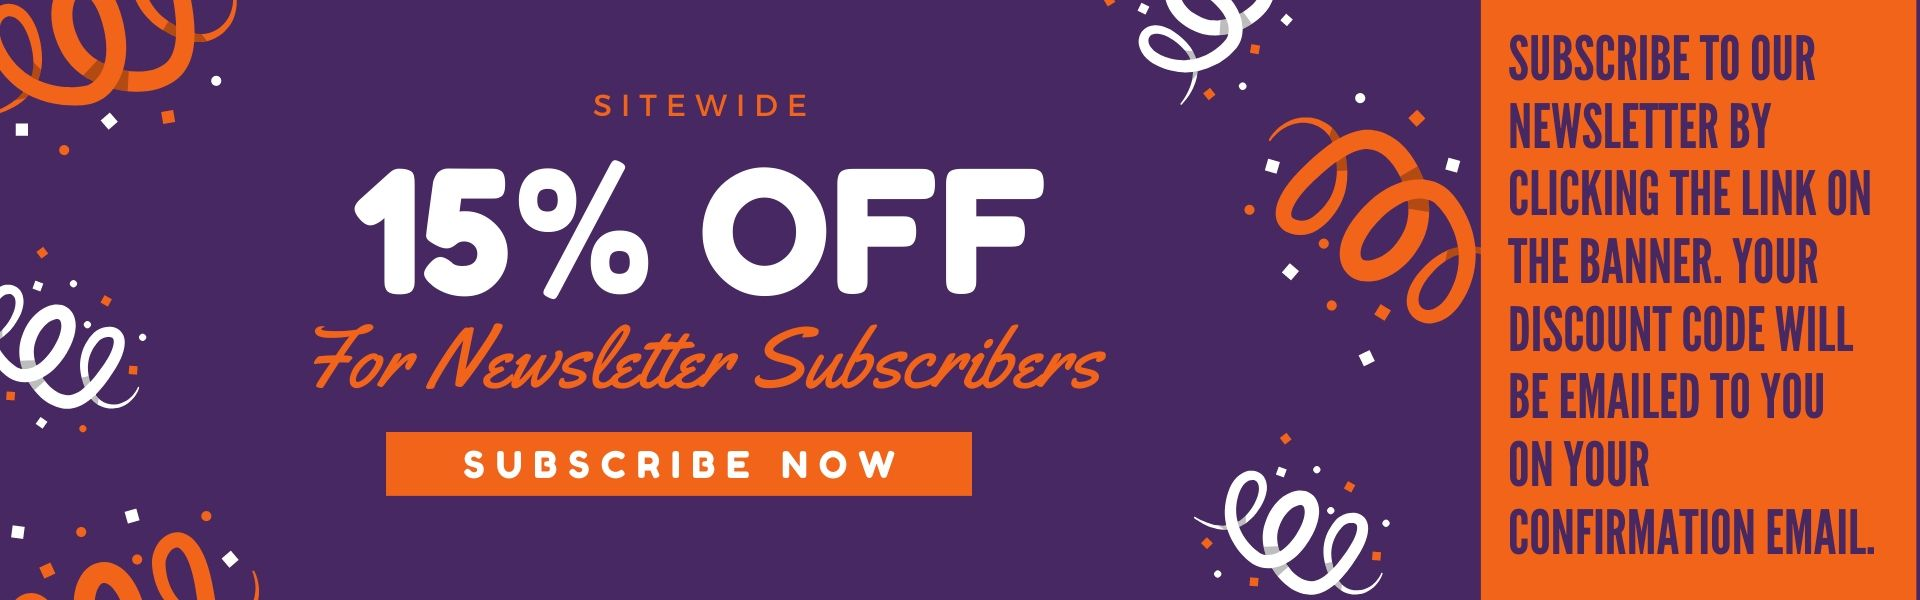 15% off email newsletter subscription